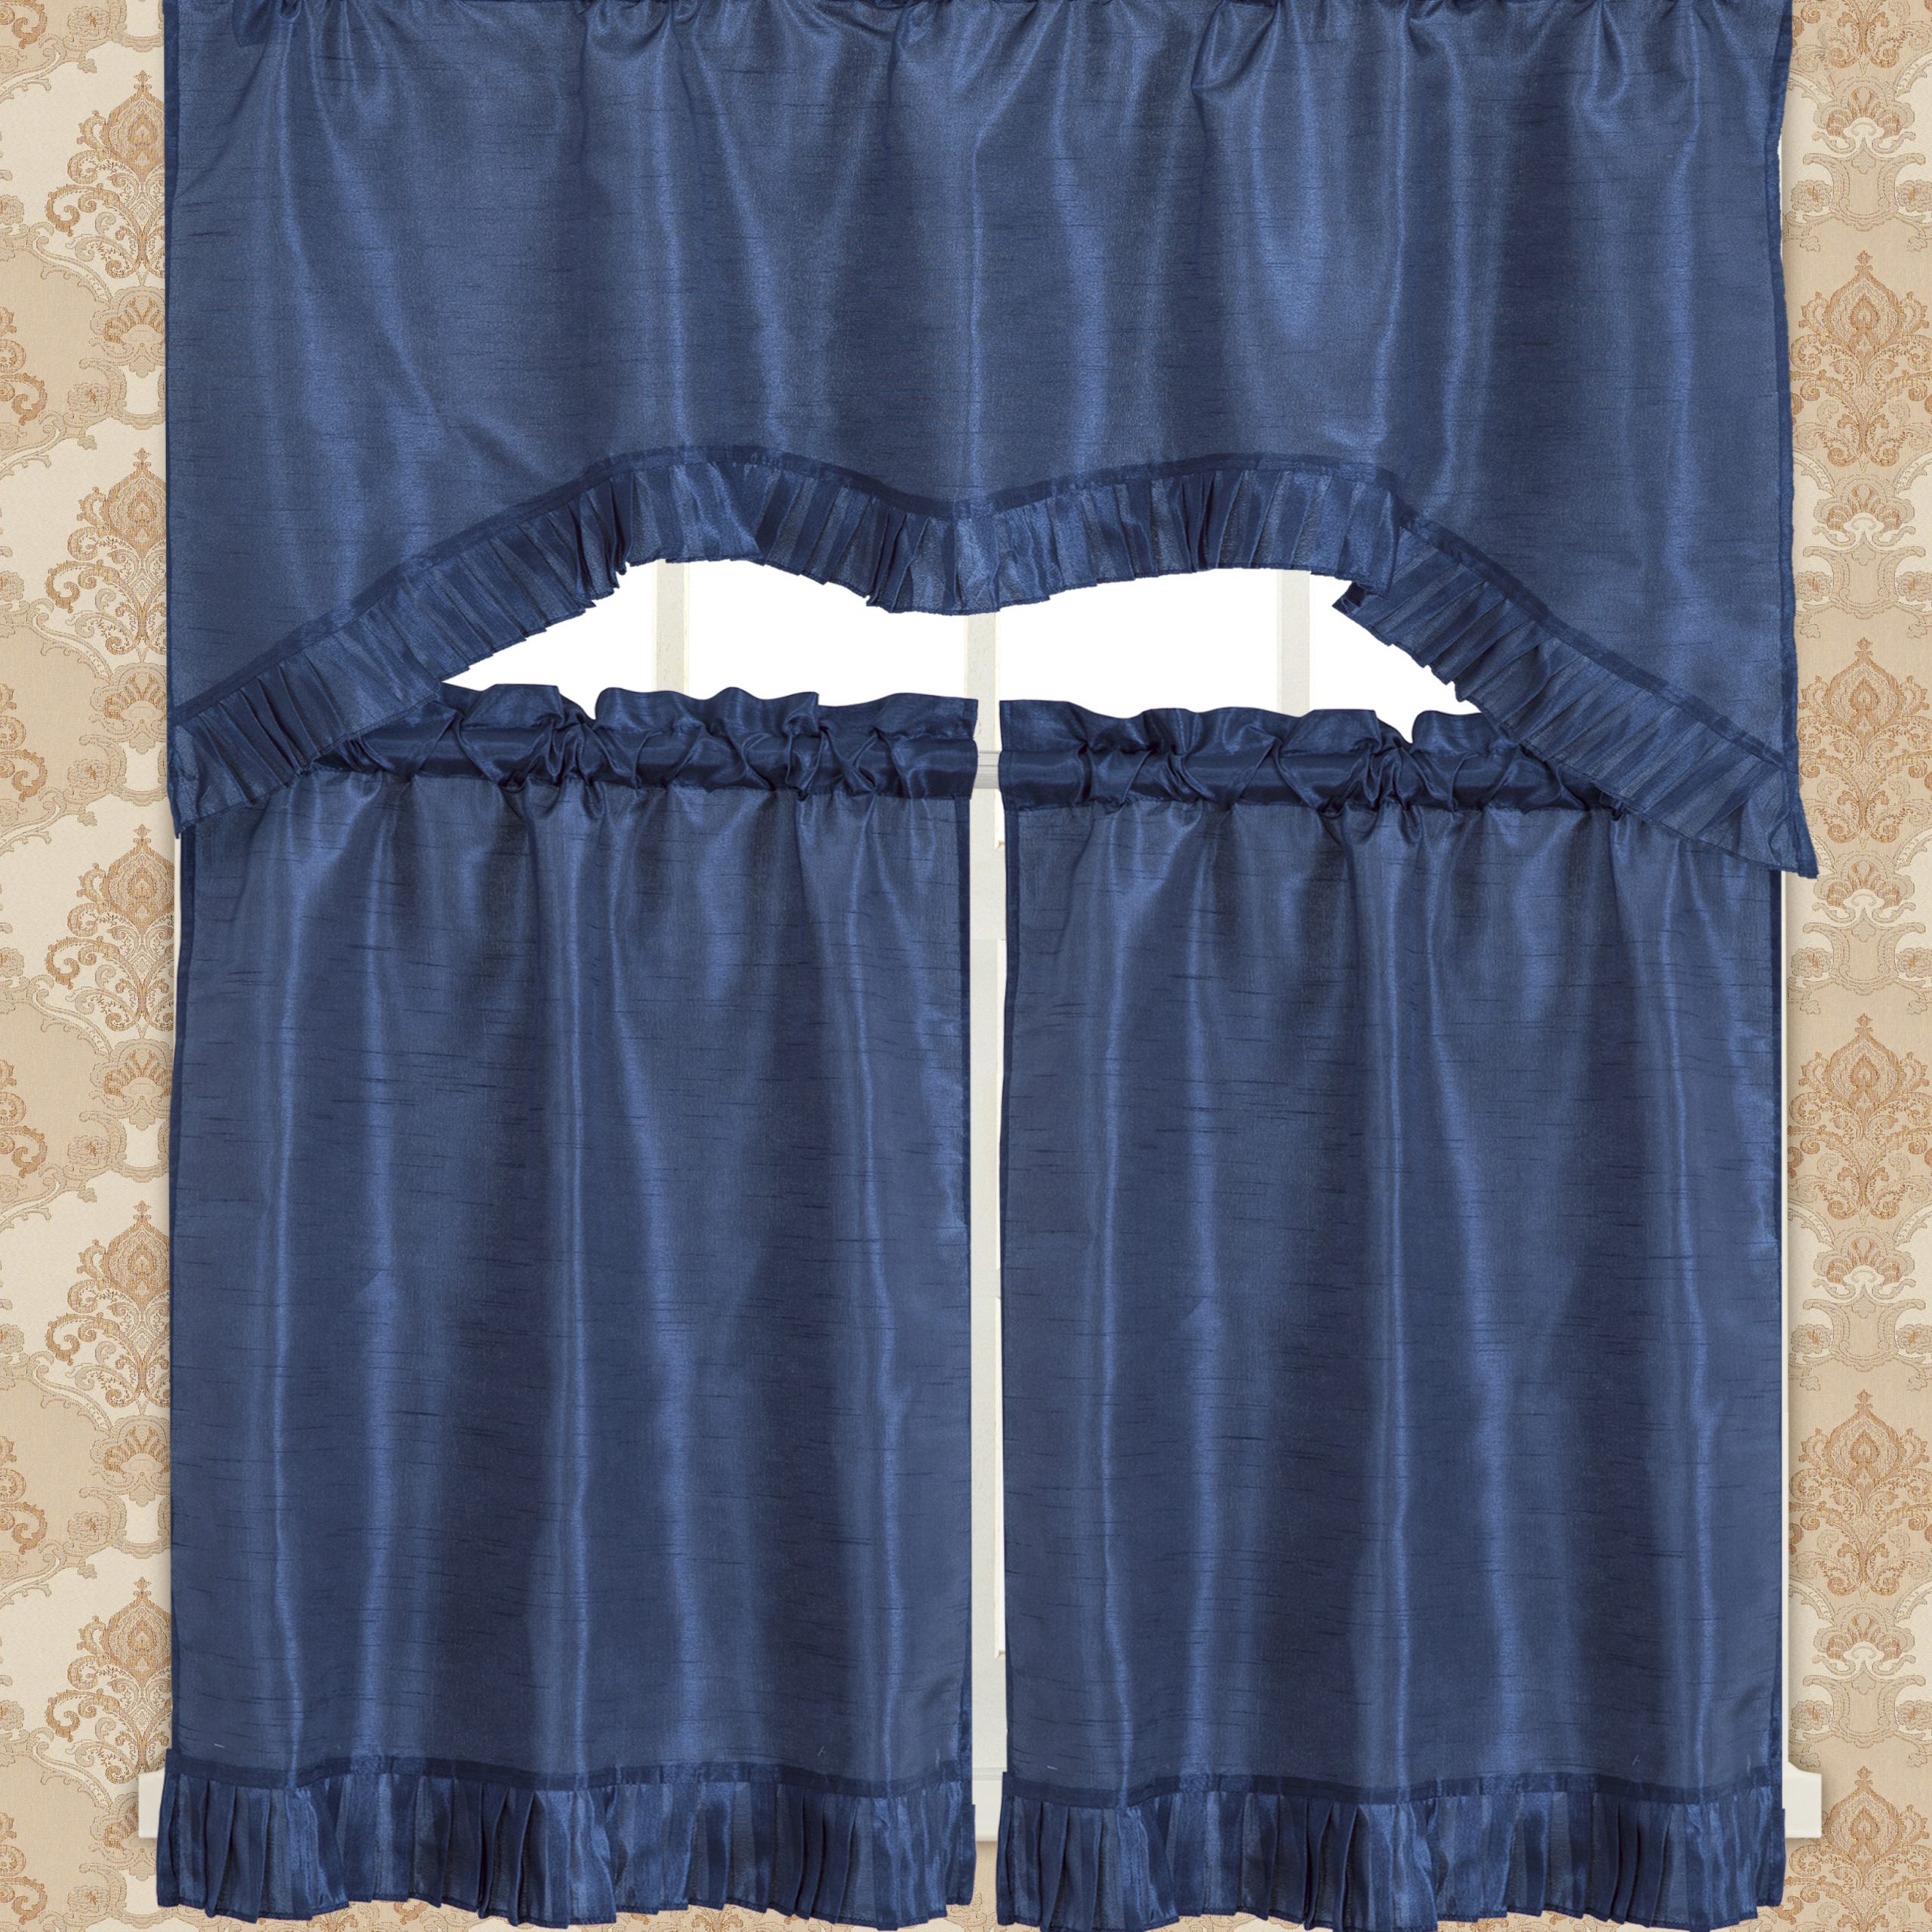 Bermuda Ruffle Kitchen Curtain Tier Set Regarding Bermuda Ruffle Kitchen Curtain Tier Sets (View 2 of 20)